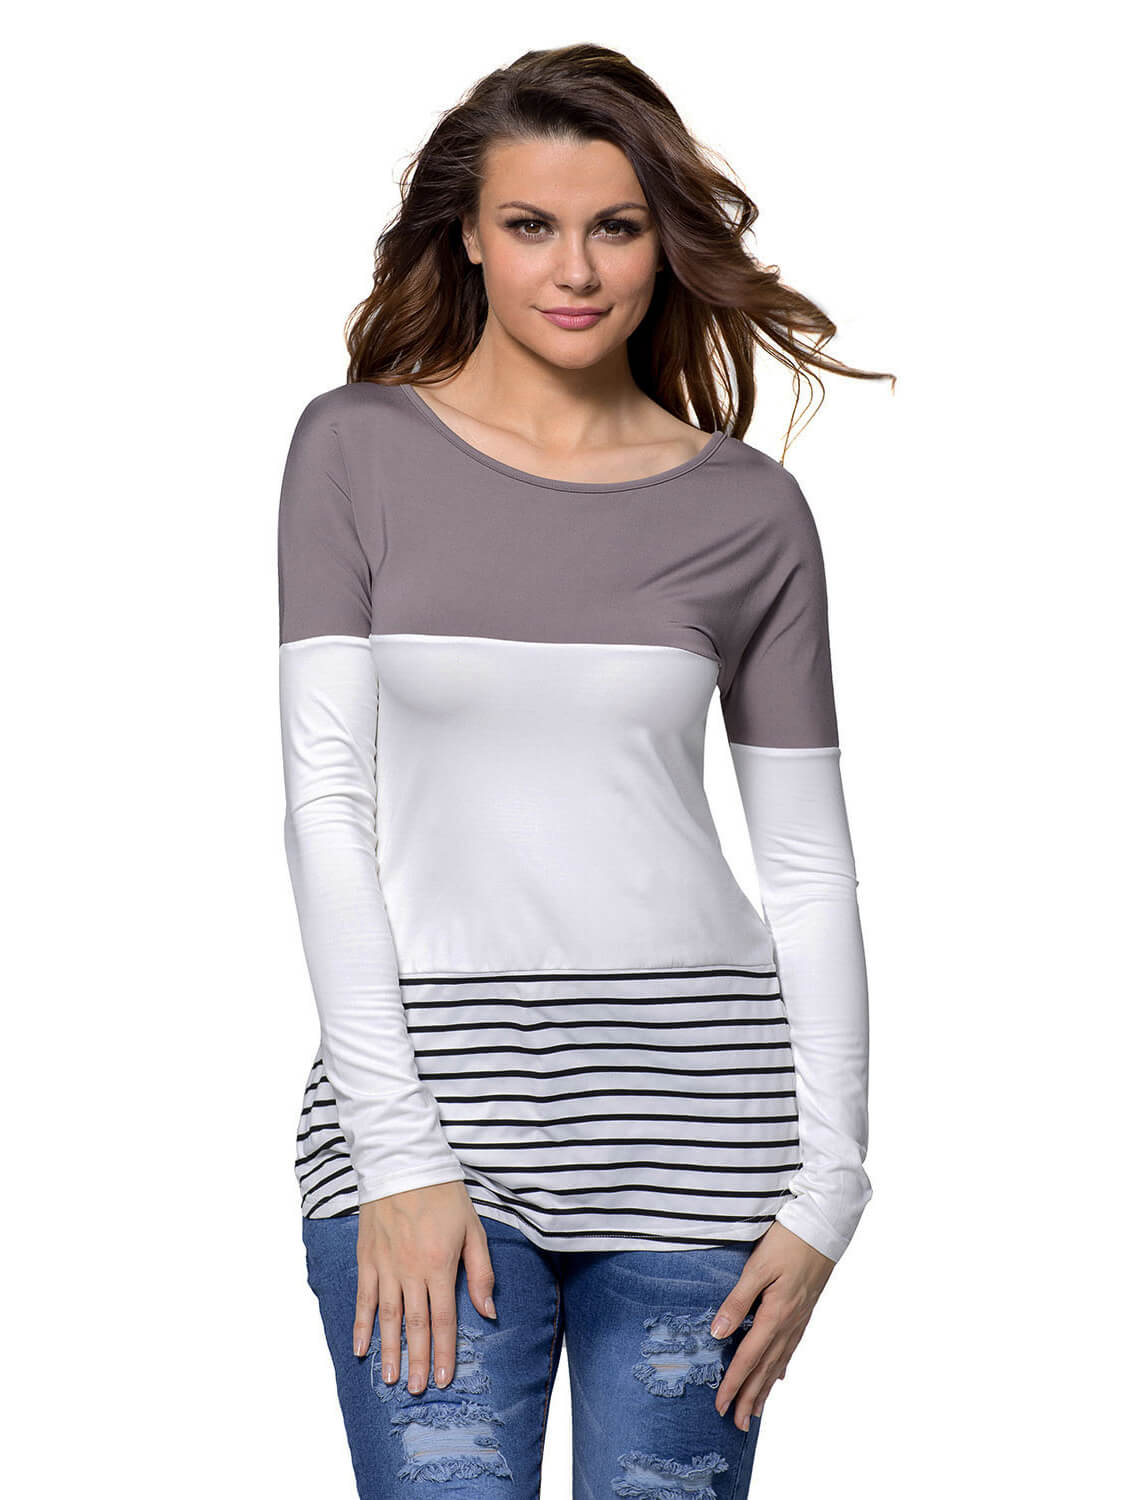 cb617248db051 Taupe White Color Block Striped Long Sleeve Blouse Top – WhatsMode